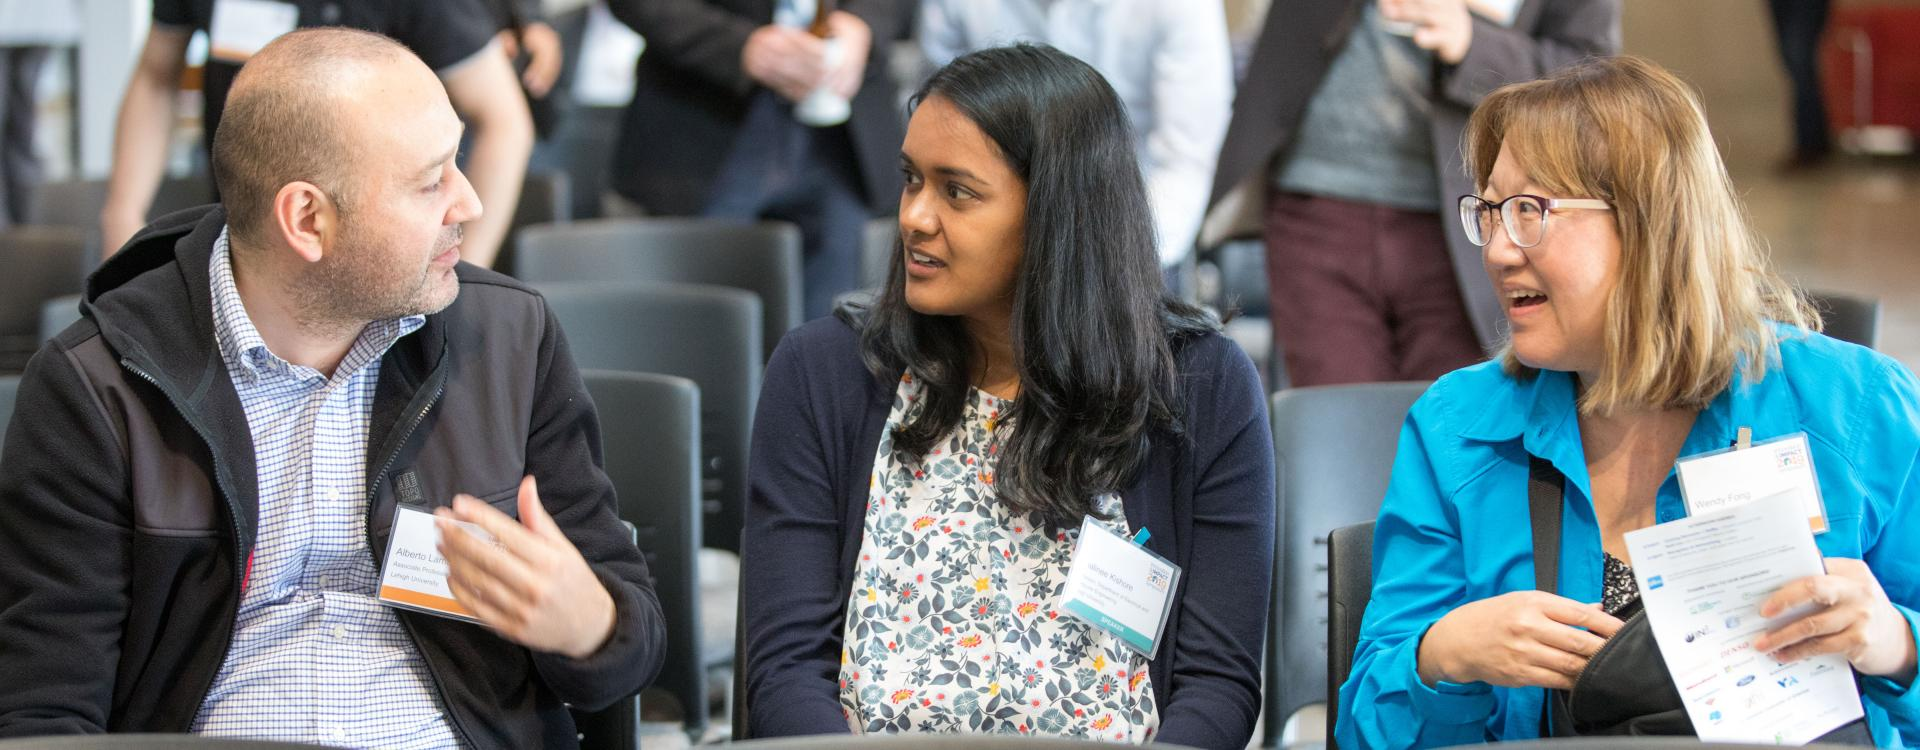 I-CPIE faculty Alberto Lamadrid (left), I-CPIE Associate Director Shalinee Kishore (center) and Lehigh's Western Regional Office Director Wendy Fong (right) at the 2019 Innovation and Impact Symposium in San Leandro, CA. (Prospect Silicon Valley photo by Ross Marlowe from Eversnap).